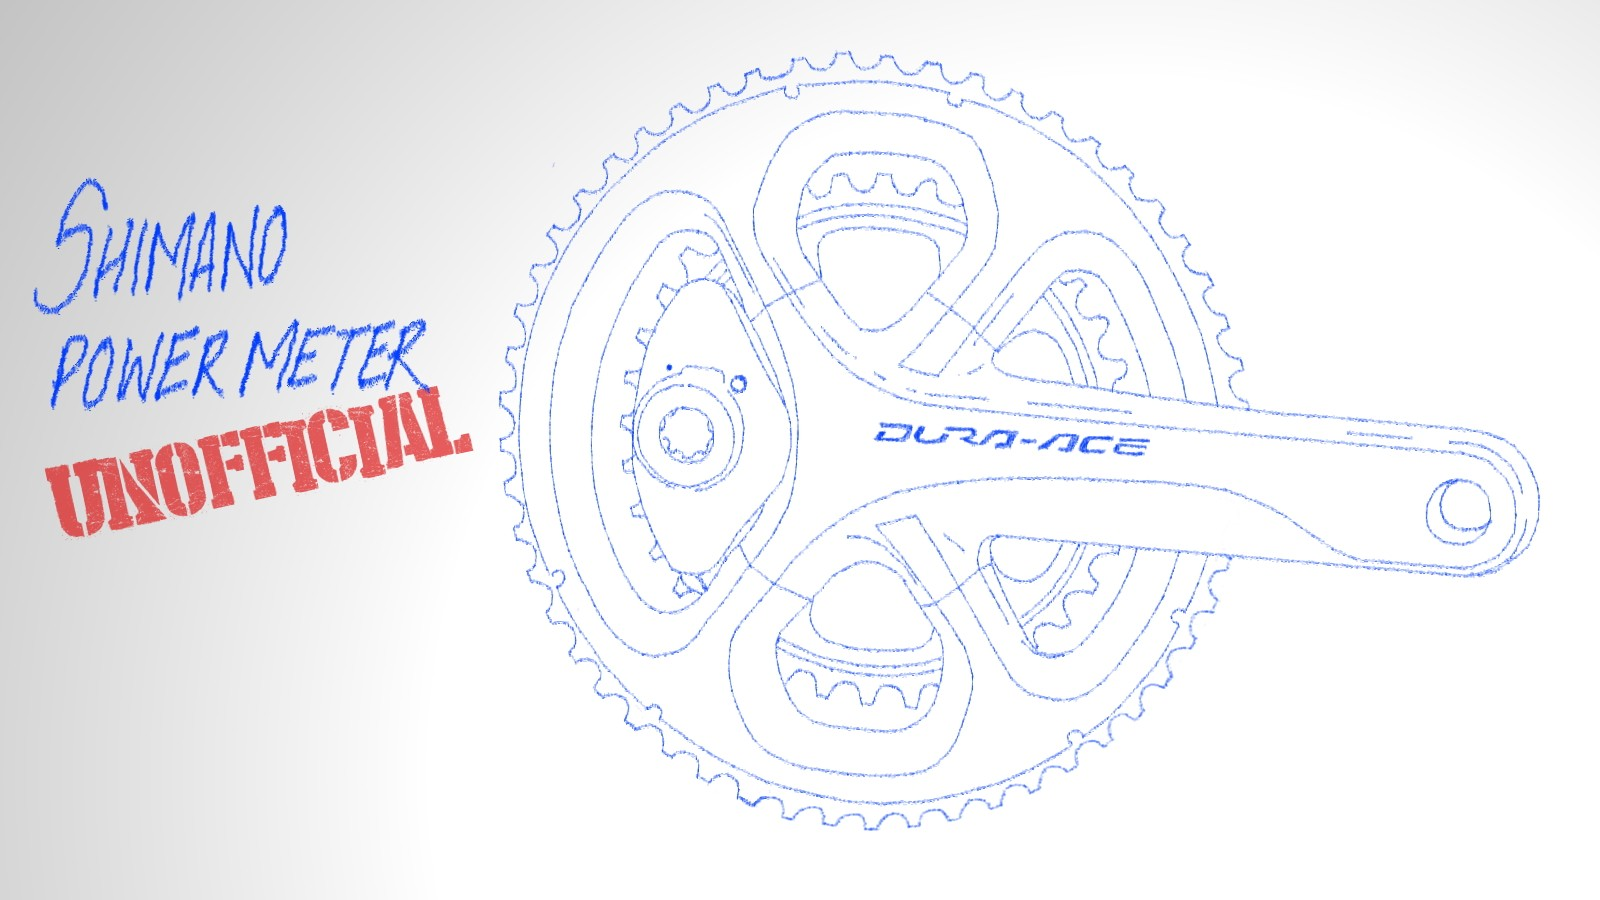 Shimano power meter - the consumer reality could be coming soon